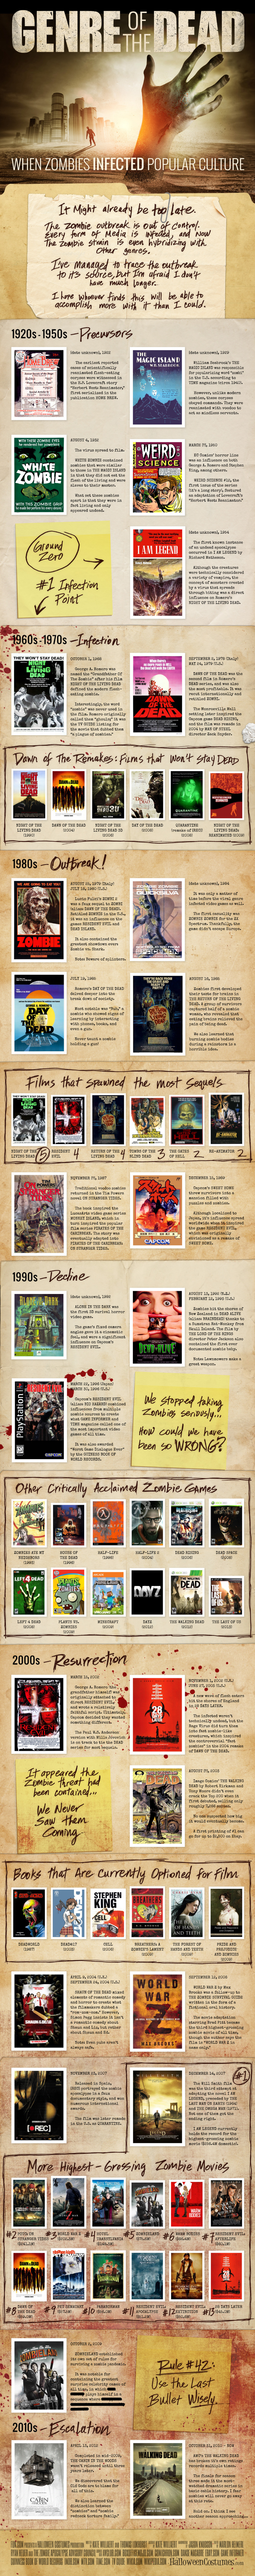 Genre of the Dead Infographic